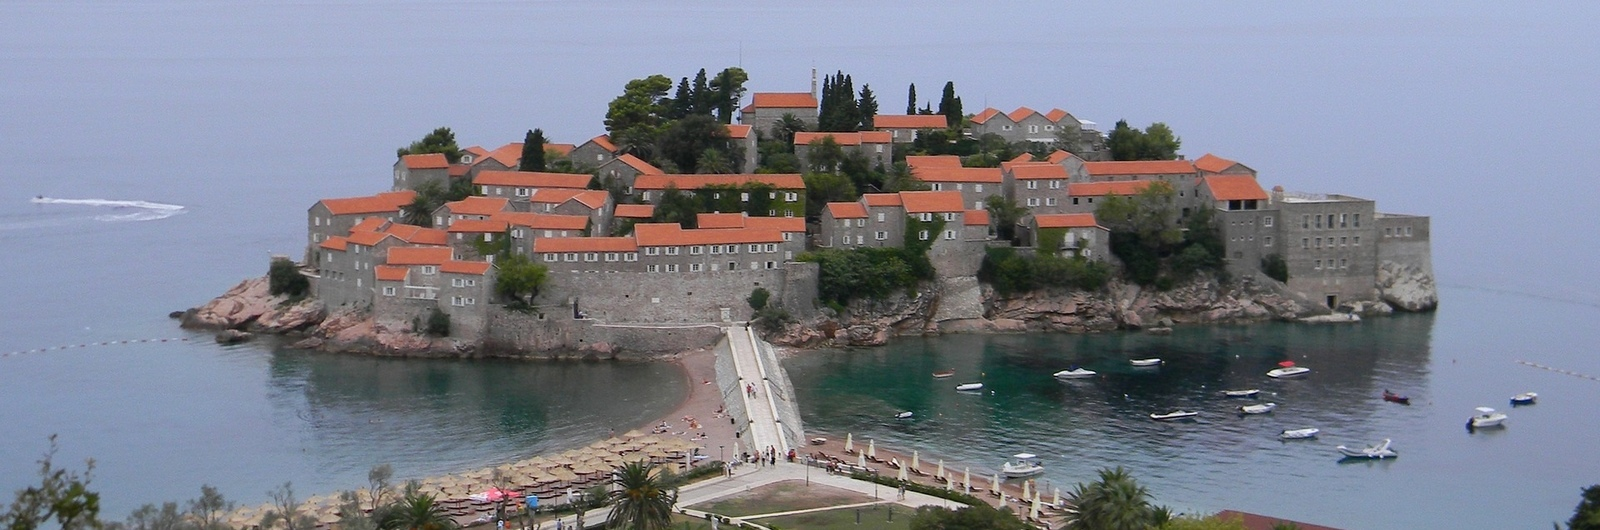 budva city header